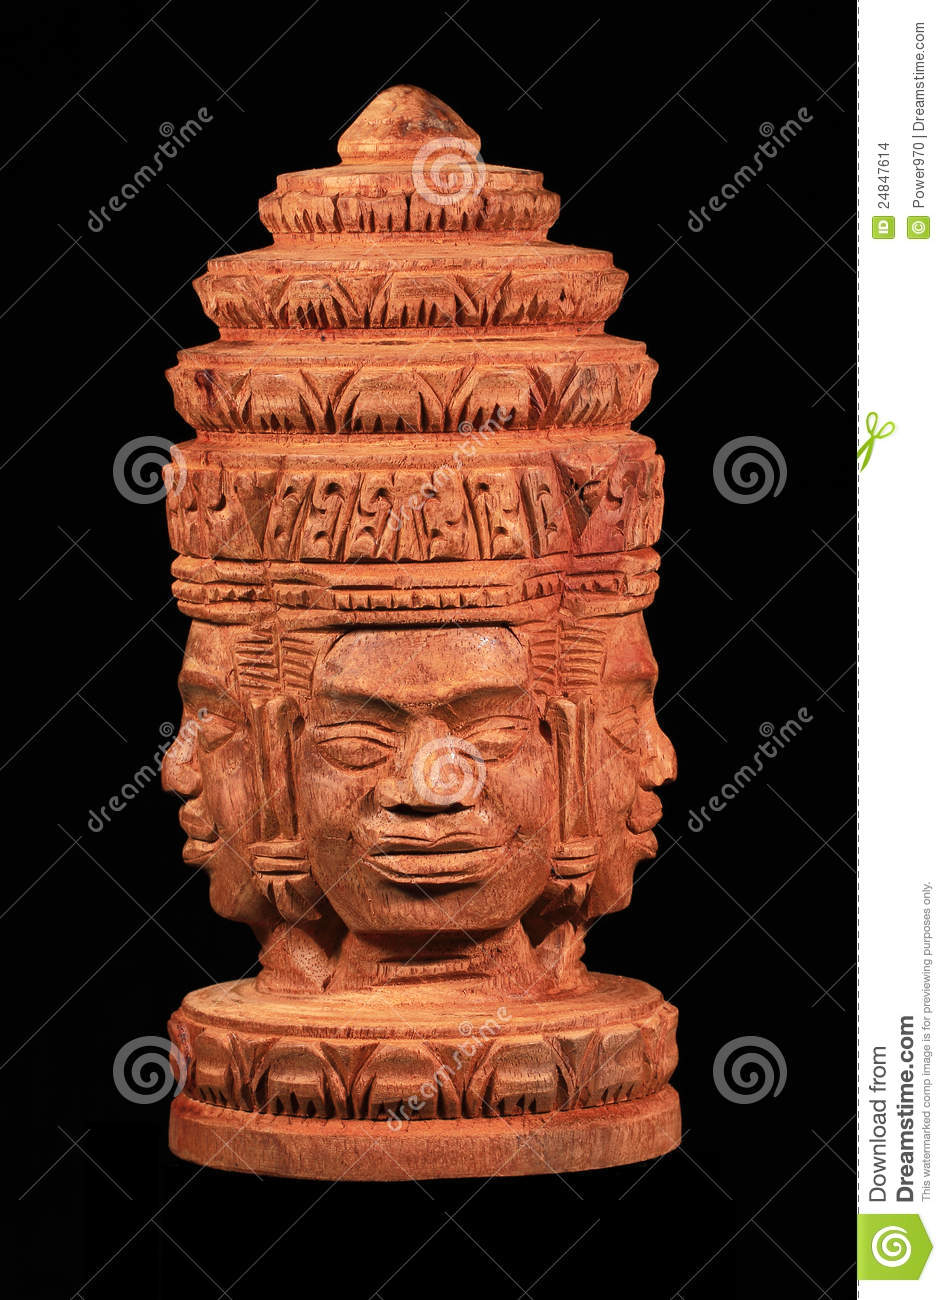 Cambodia Wood Carving Stock Photo Image Of Buddha